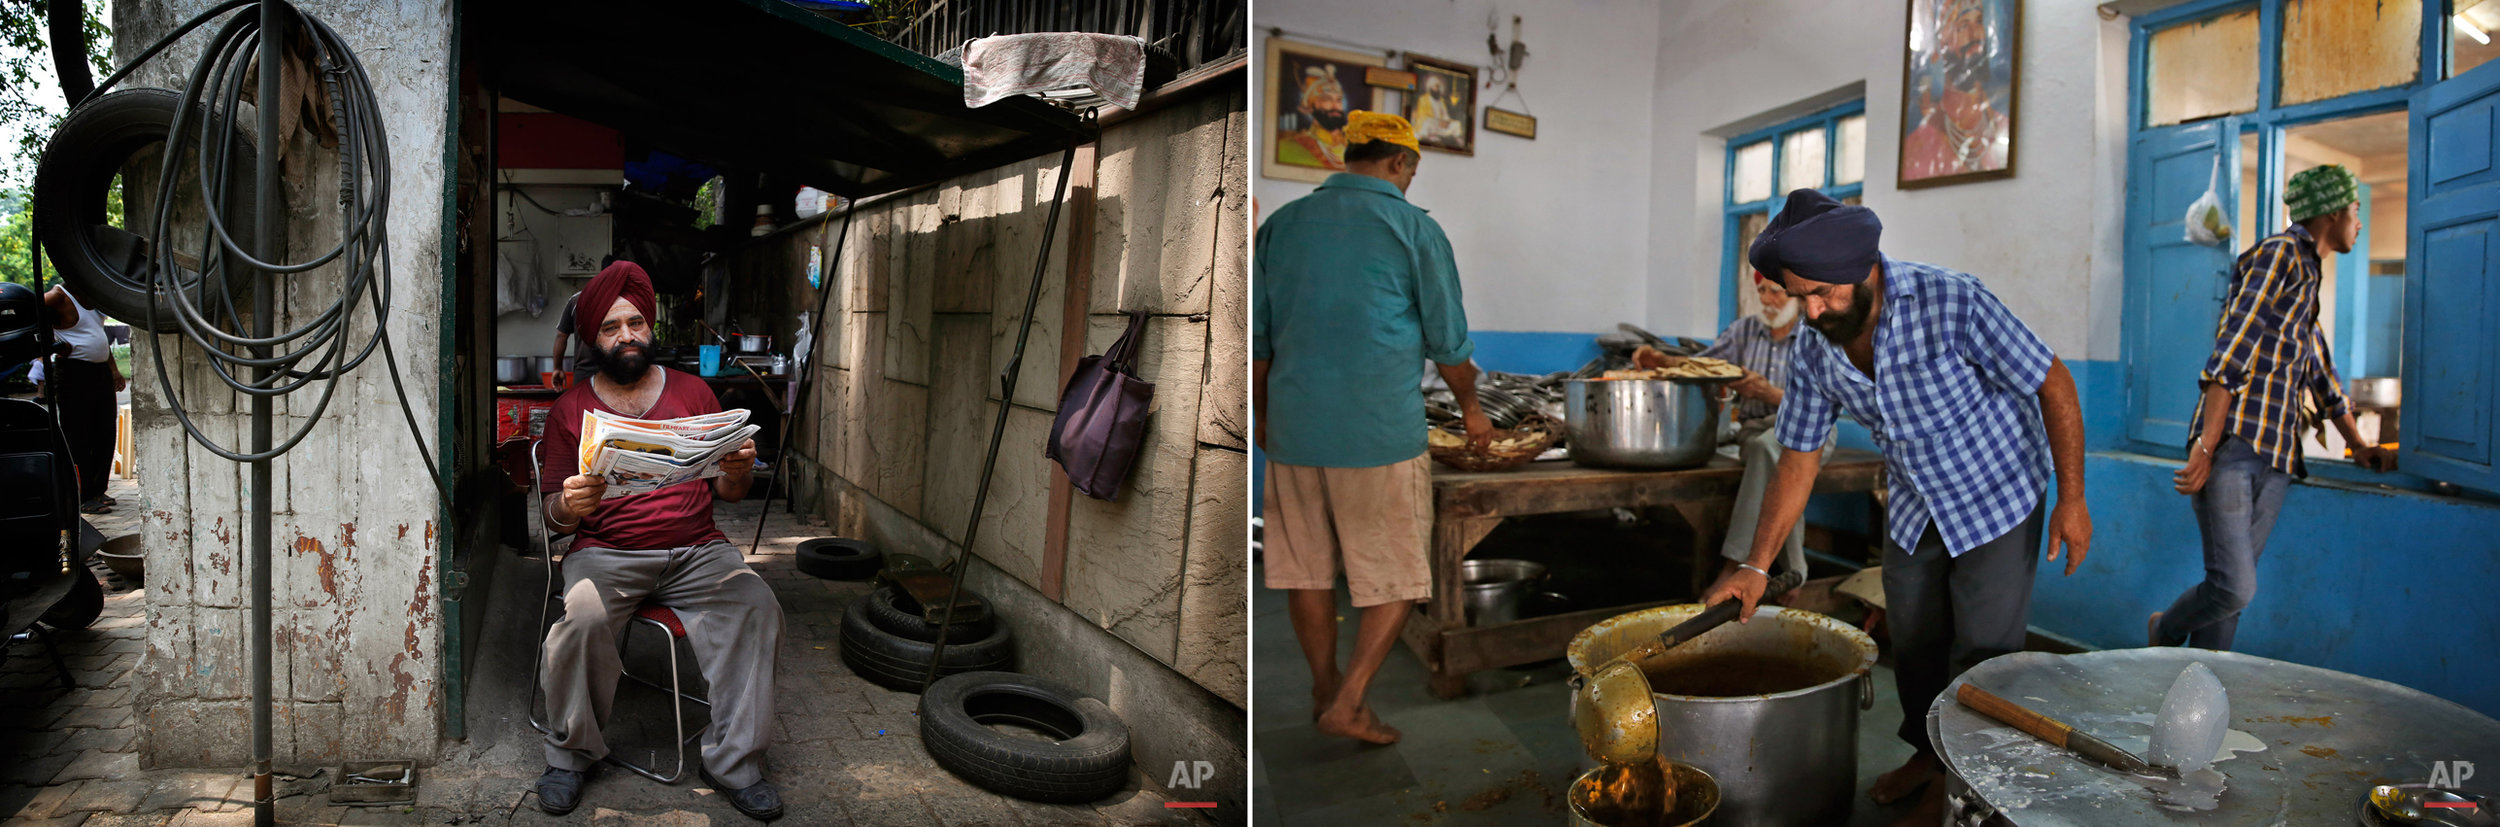 This two picture combo shows on left, Harkerat Singh, a roadside tyre puncture mechanic sits outside his shop, in New Delhi, India, on June 16, 2015, as on right, he serves lentils during langar at the Majnu-Ka-Tila Gurdwara or Sikh temple, in New Delhi, India, on June 14, 2015. The langar, which translates to community meal, started by Guru Nanak, founder of Sikhism in late 15th century, a place where people from different cast and creed come under one roof to eat and serve. It is now a tradition followed by more than 30 million Sikhs worldwide. Nearly every Gurdwara in the world, irrespective of size, has a kitchen and serves lanagar. (AP Photo/Manish Swarup)